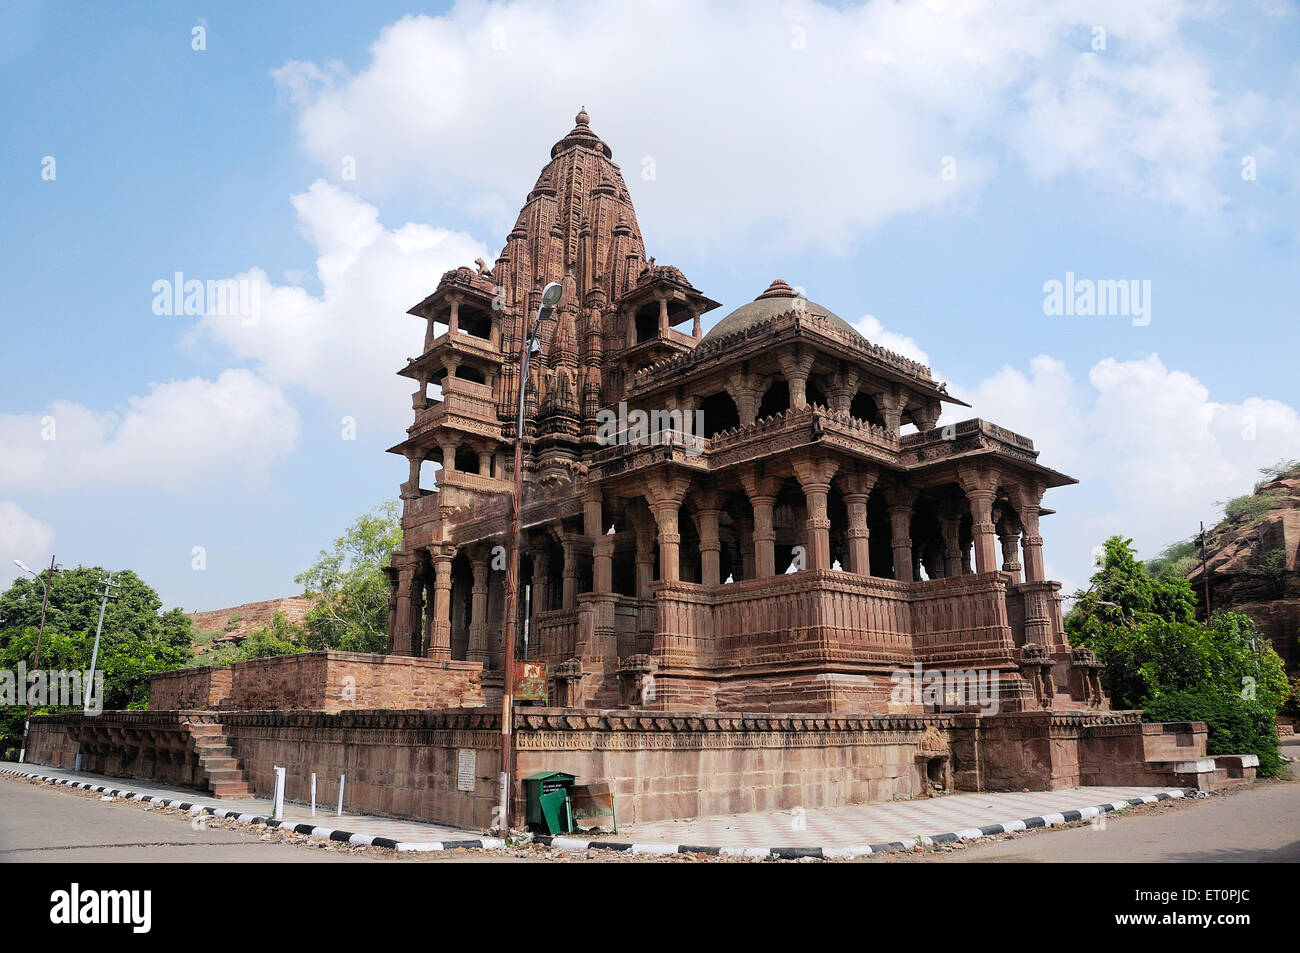 Deval ; Mandore ; Jodhpur ; Rajasthan ; India Stock Photo